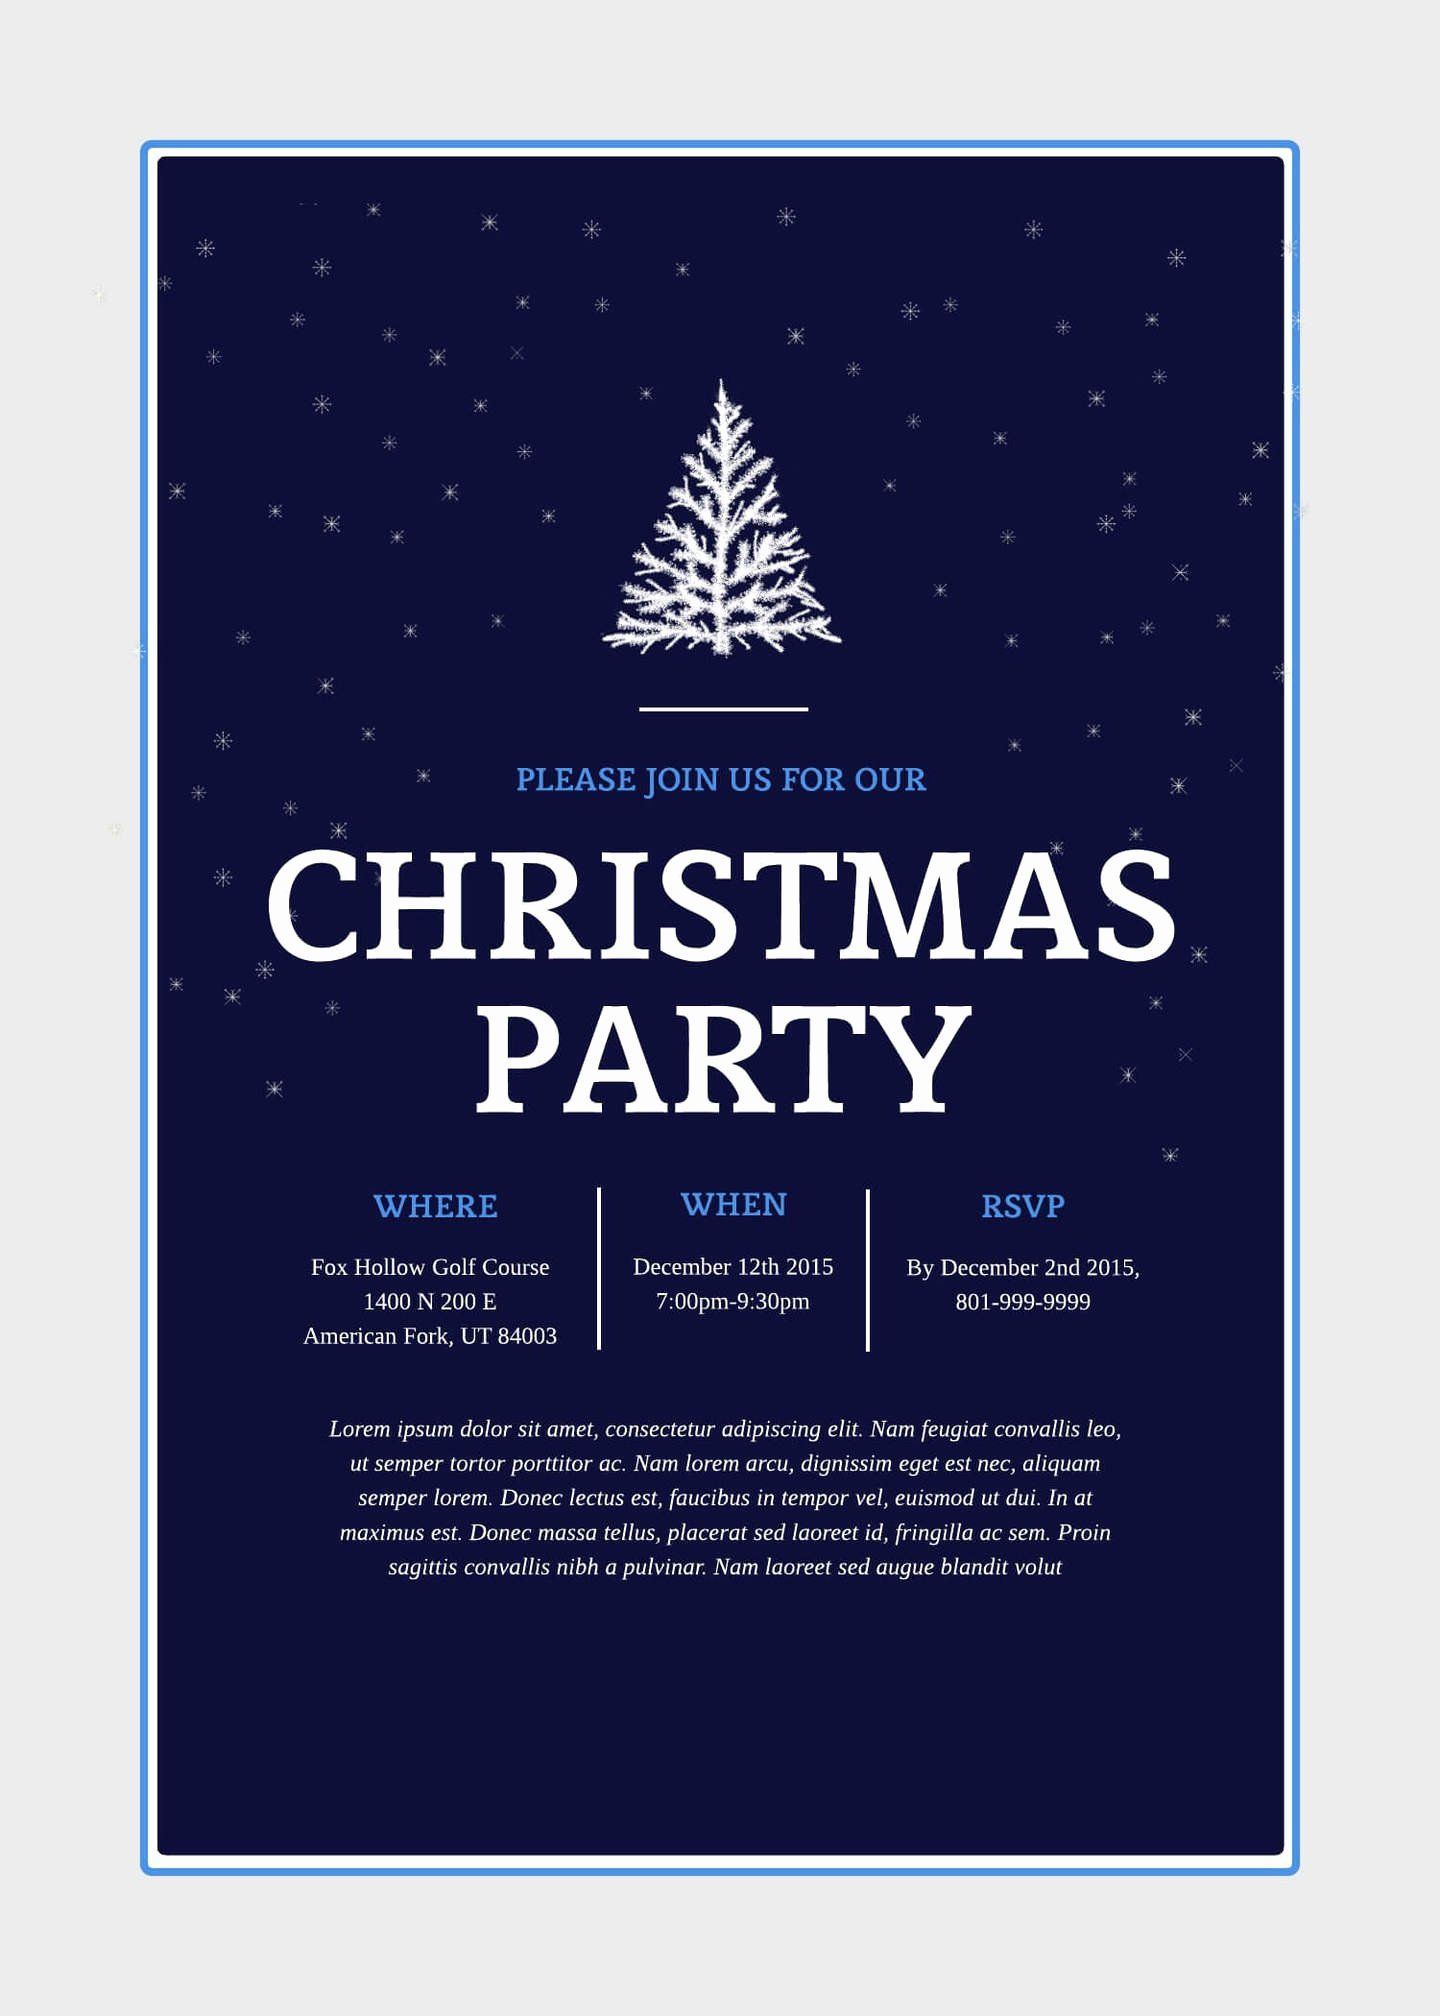 Free Christmas Party Invitations Template Luxury Print And Win Holid Christmas Party Invitation Template Christmas Party Invitations Free Party Invite Template